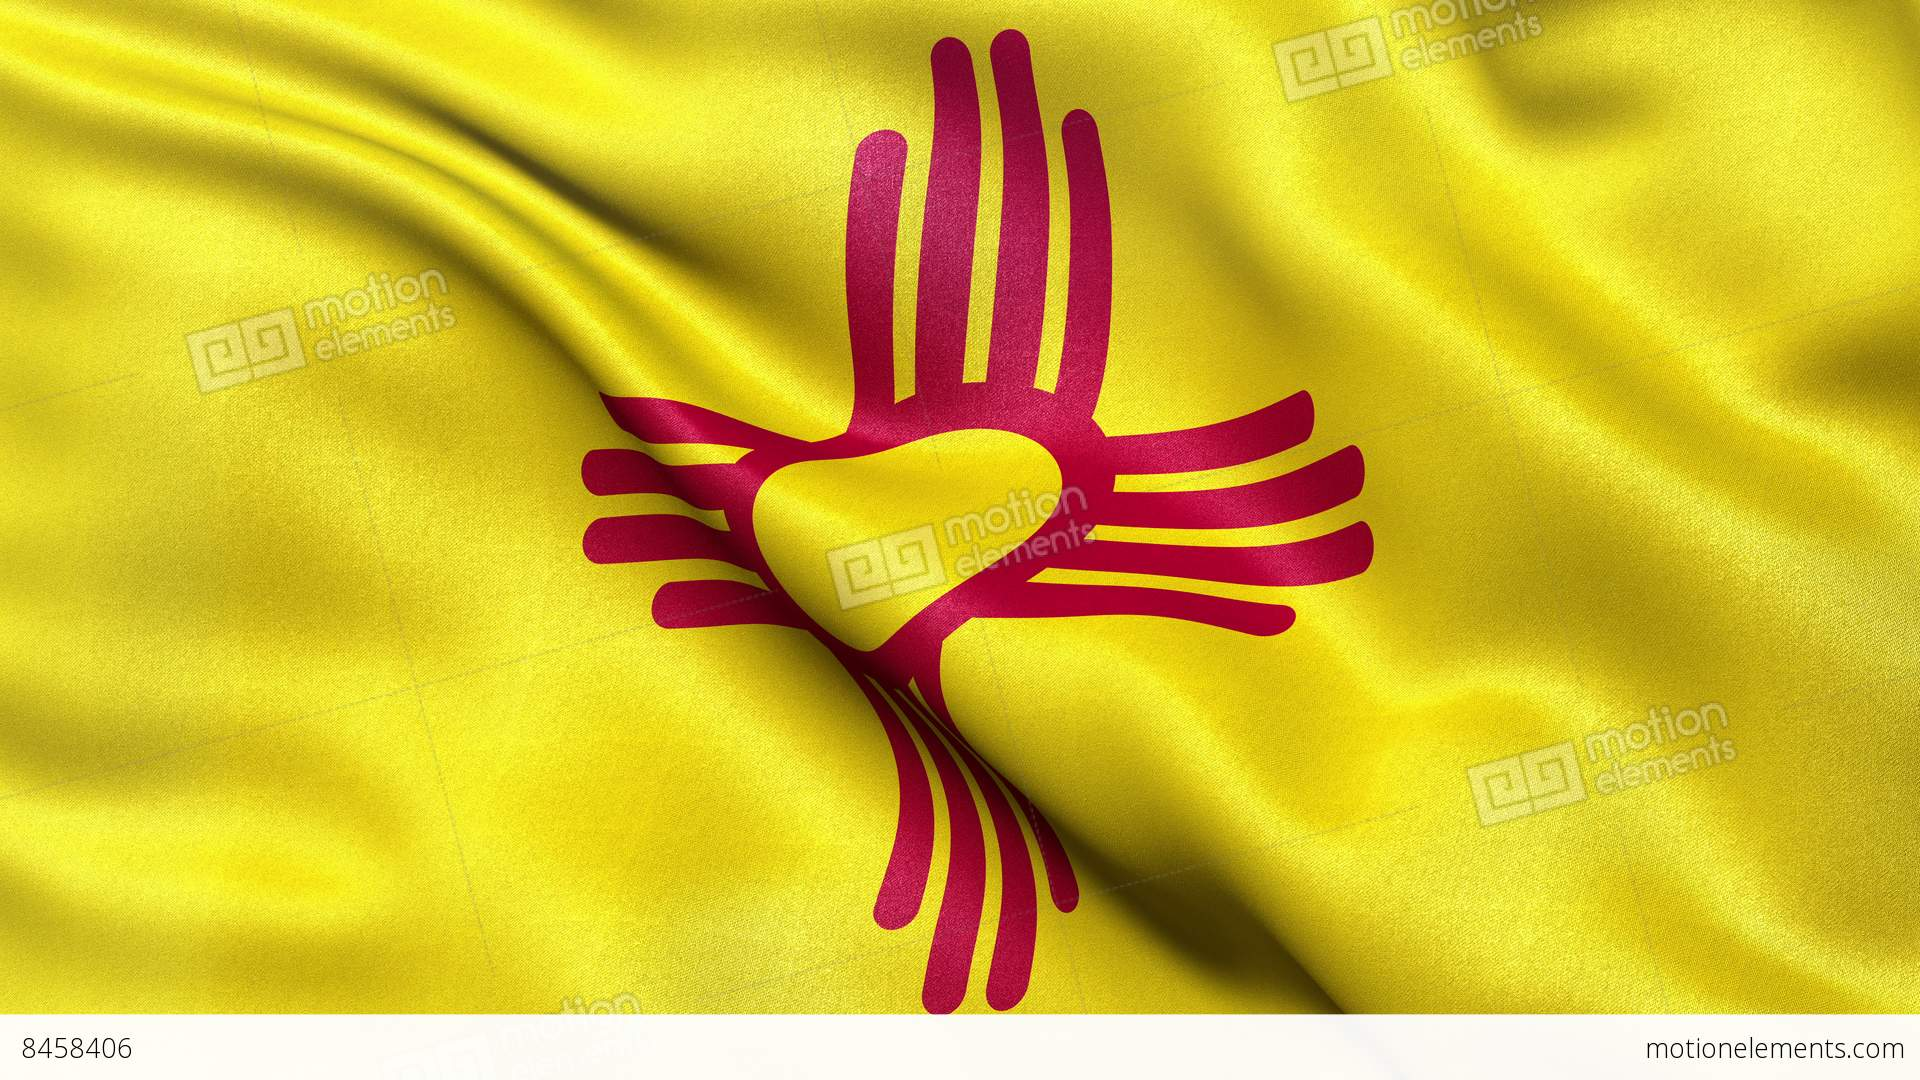 4k new mexico state flag seamless loop ultra hd stock animation 4k new mexico state flag seamless loop ultra hd stock video footage symbols buycottarizona